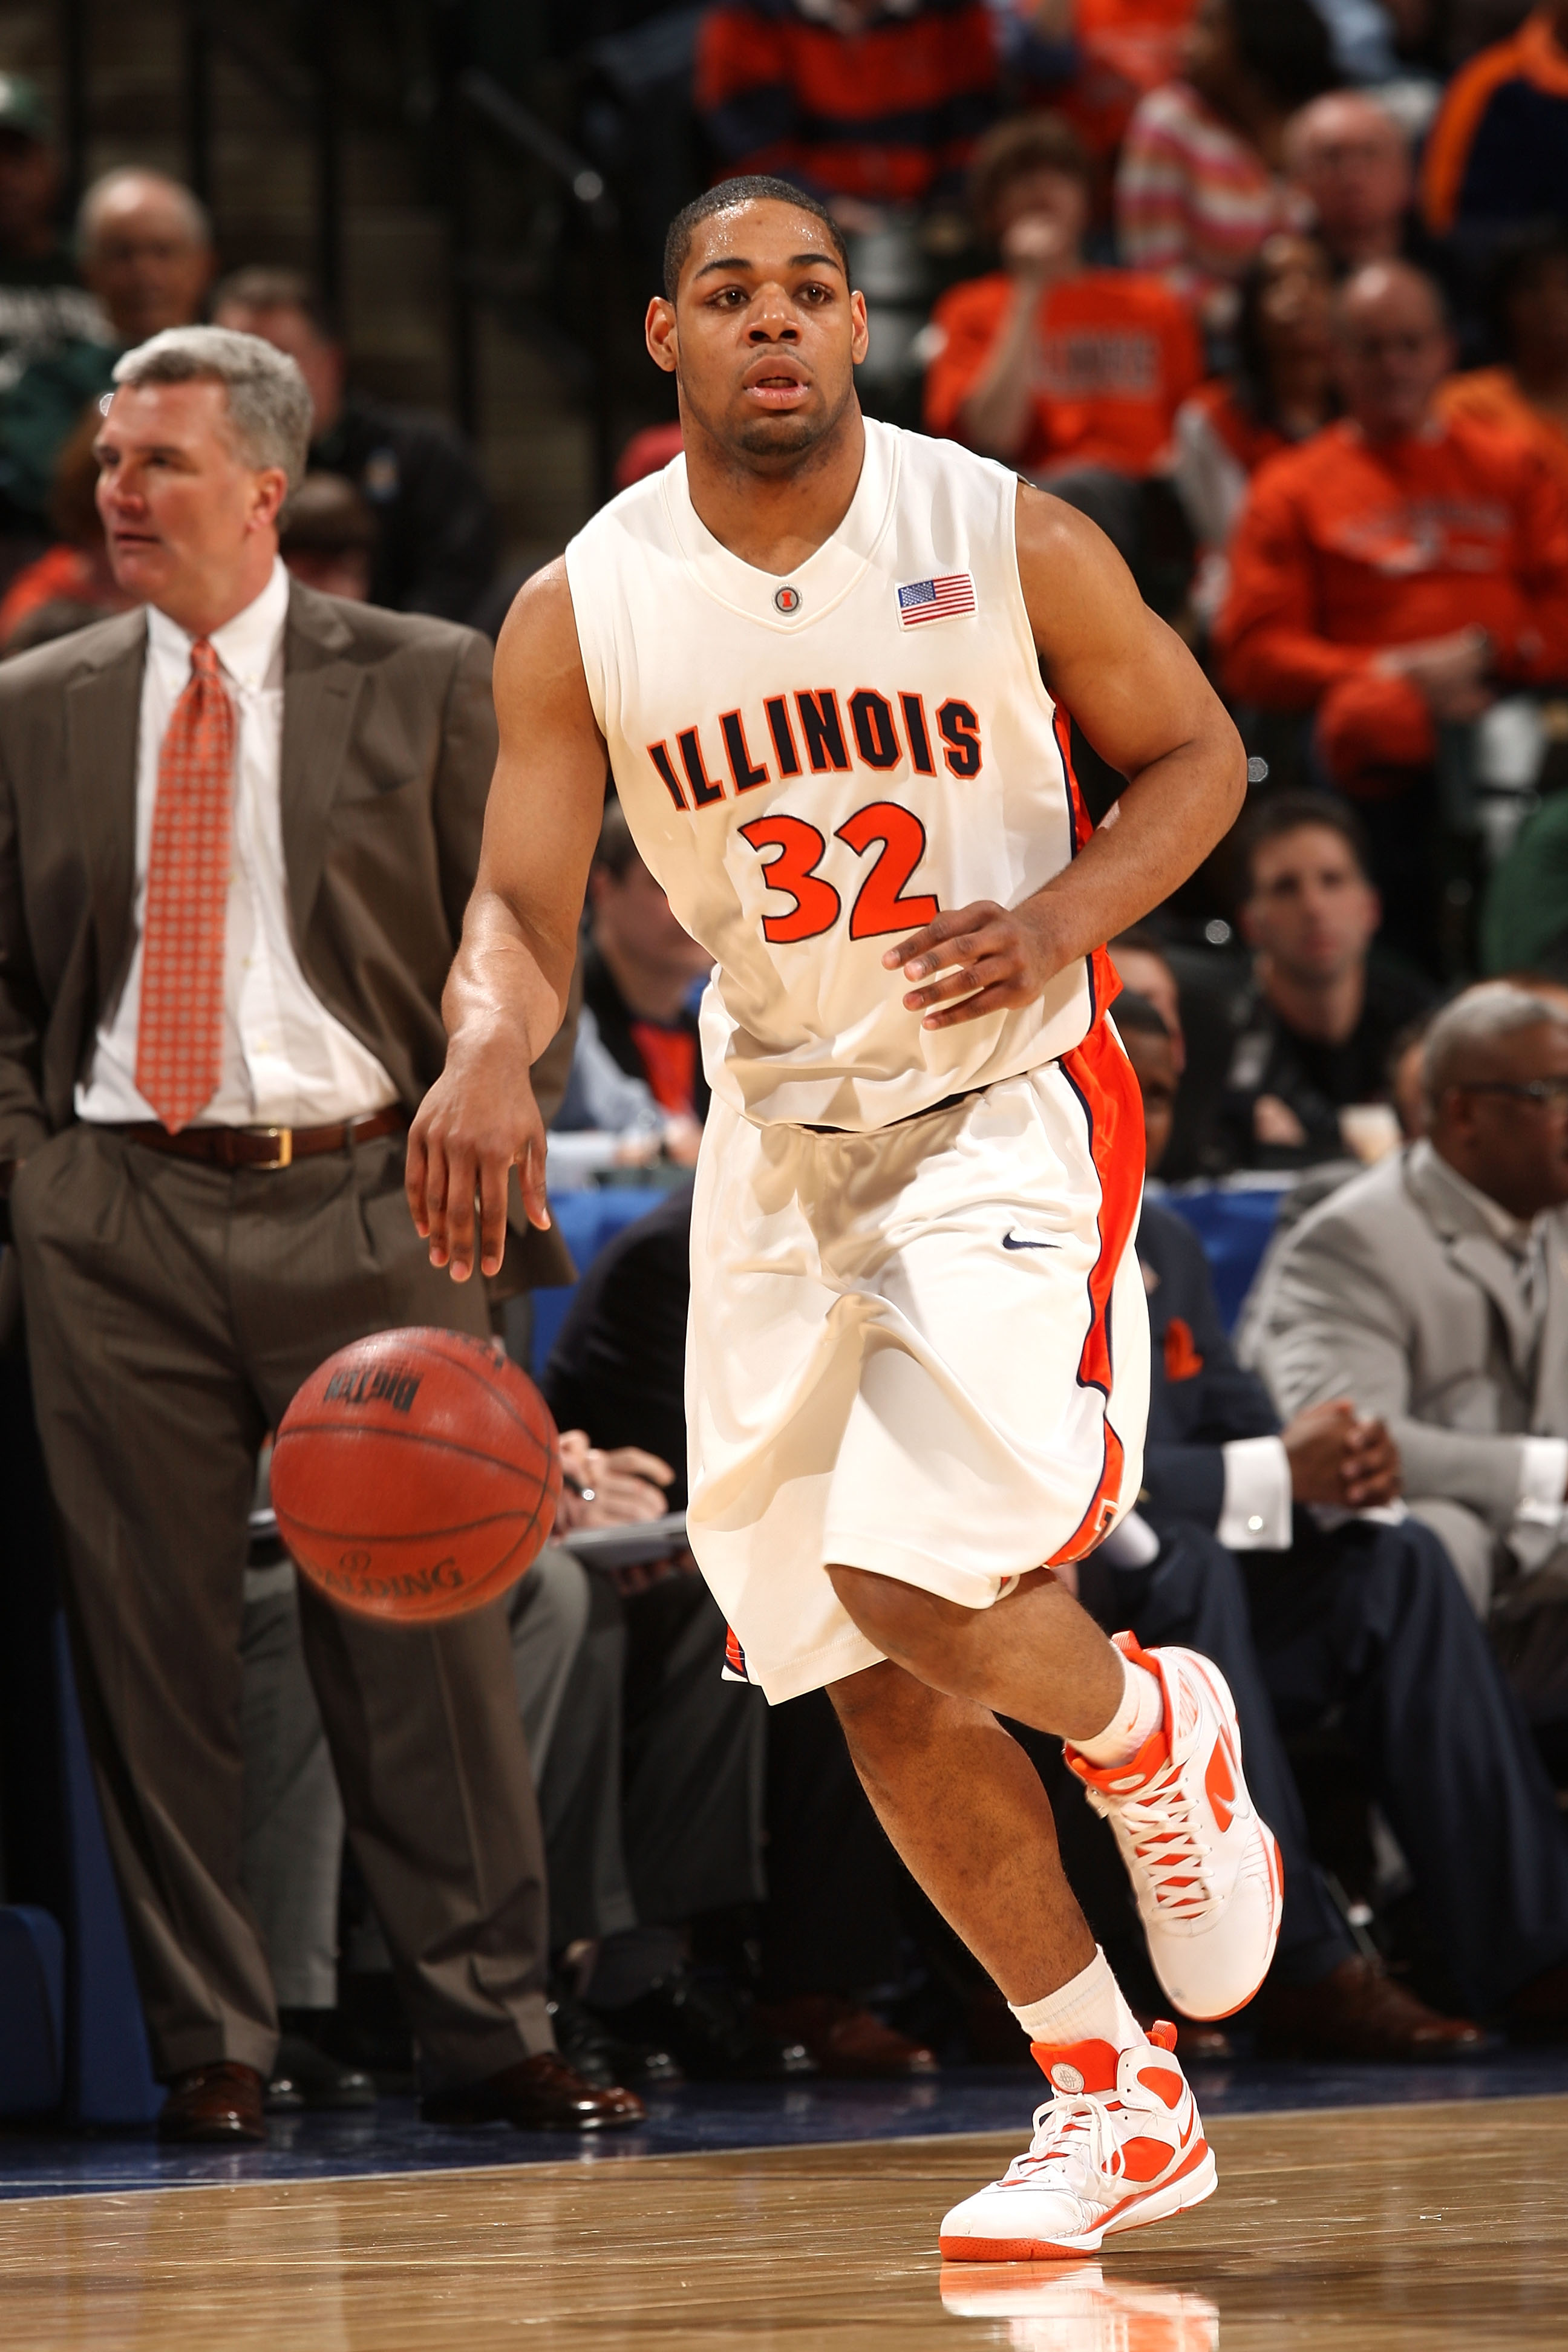 INDIANAPOLIS - MARCH 13:  Demetri McCamey #32 of the Illinois Fighting Illini brings the ball up court against the Michigan Wolverines during the second round of the Big Ten Men's Basketball Tournament at Conseco Fieldhouse on March 13, 2009 in Indianapol